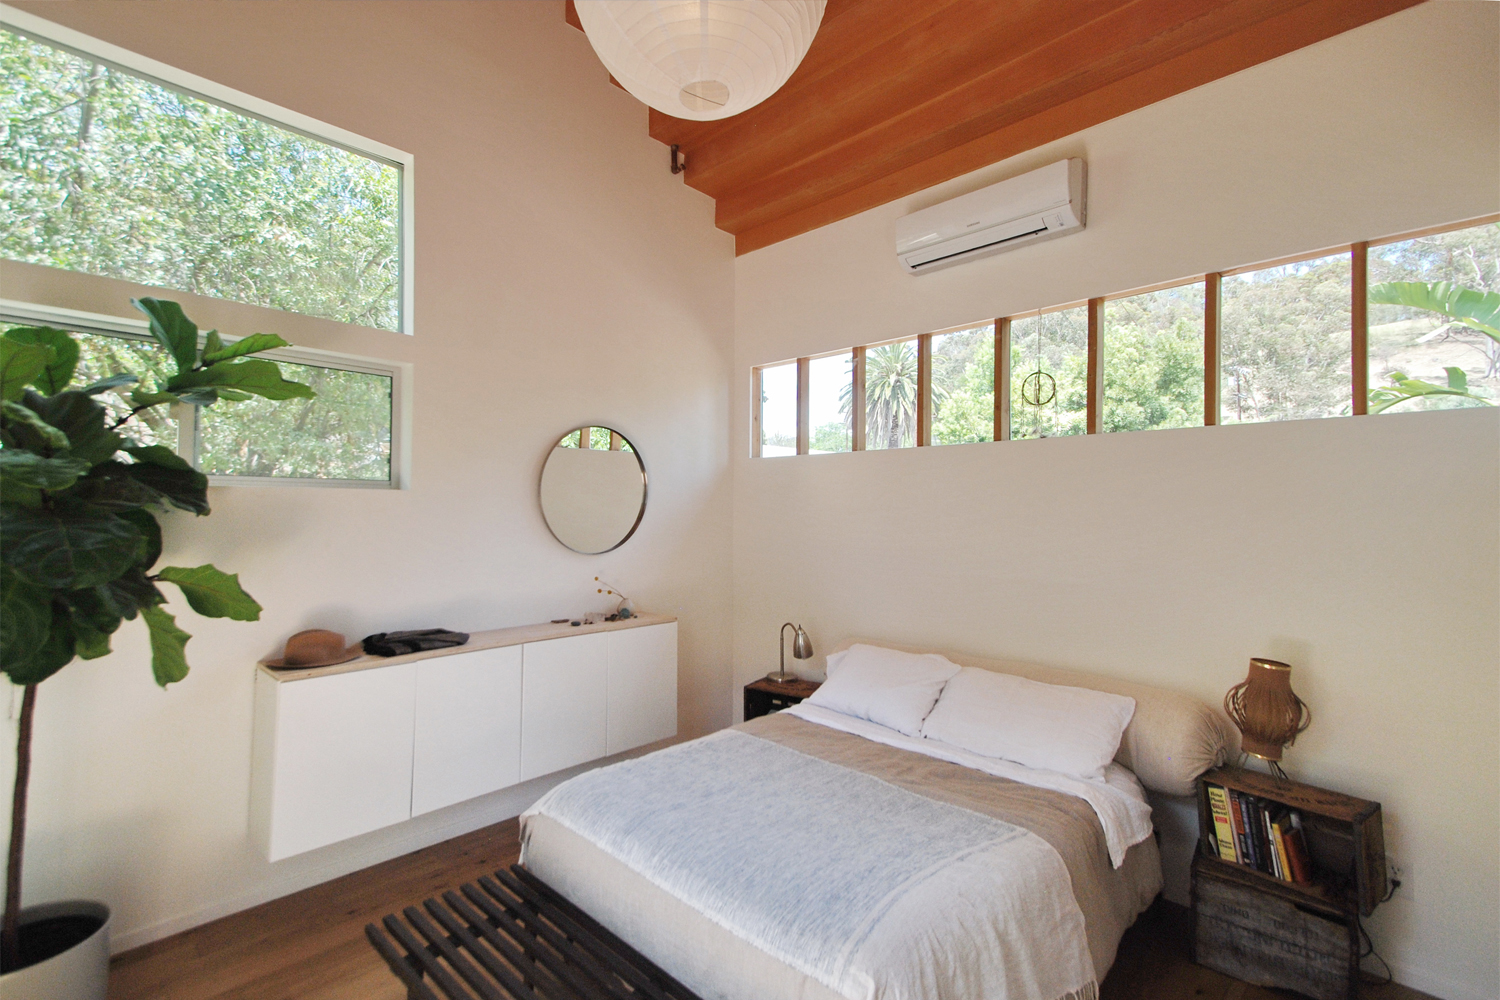 COTTAGE_bedroom-1.jpg